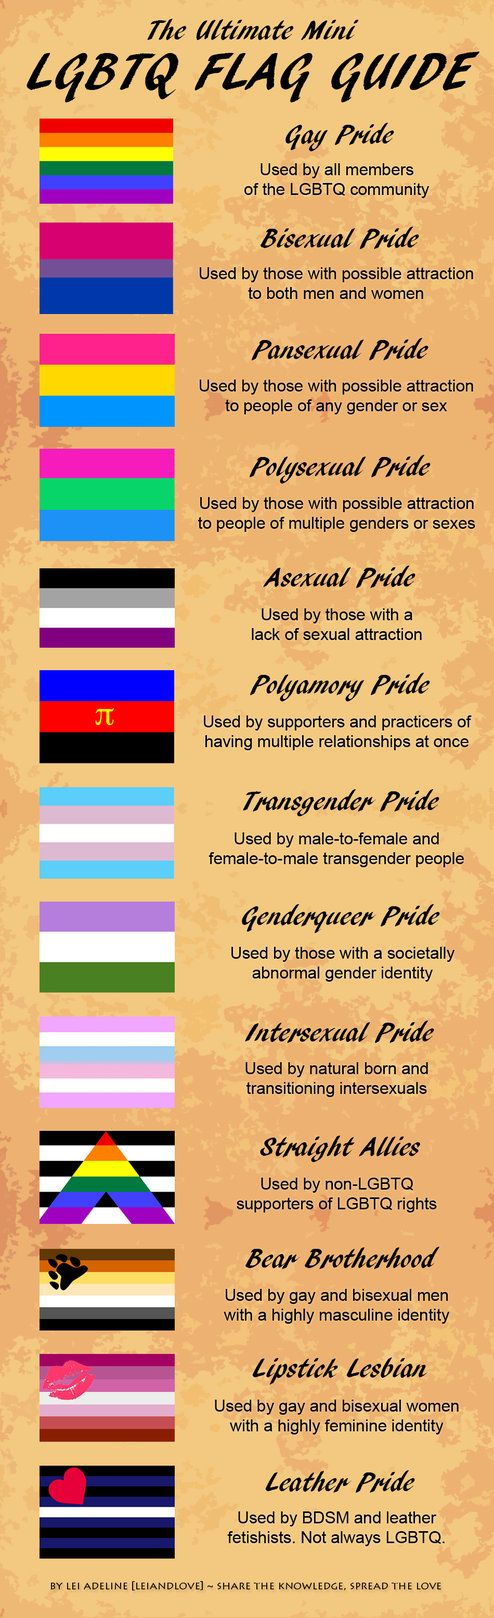 The ultimate mini lgbtq flag guide self compassion pinterest the ultimate mini lgbtq flag guide so where is the butch lesbian flag biocorpaavc Gallery